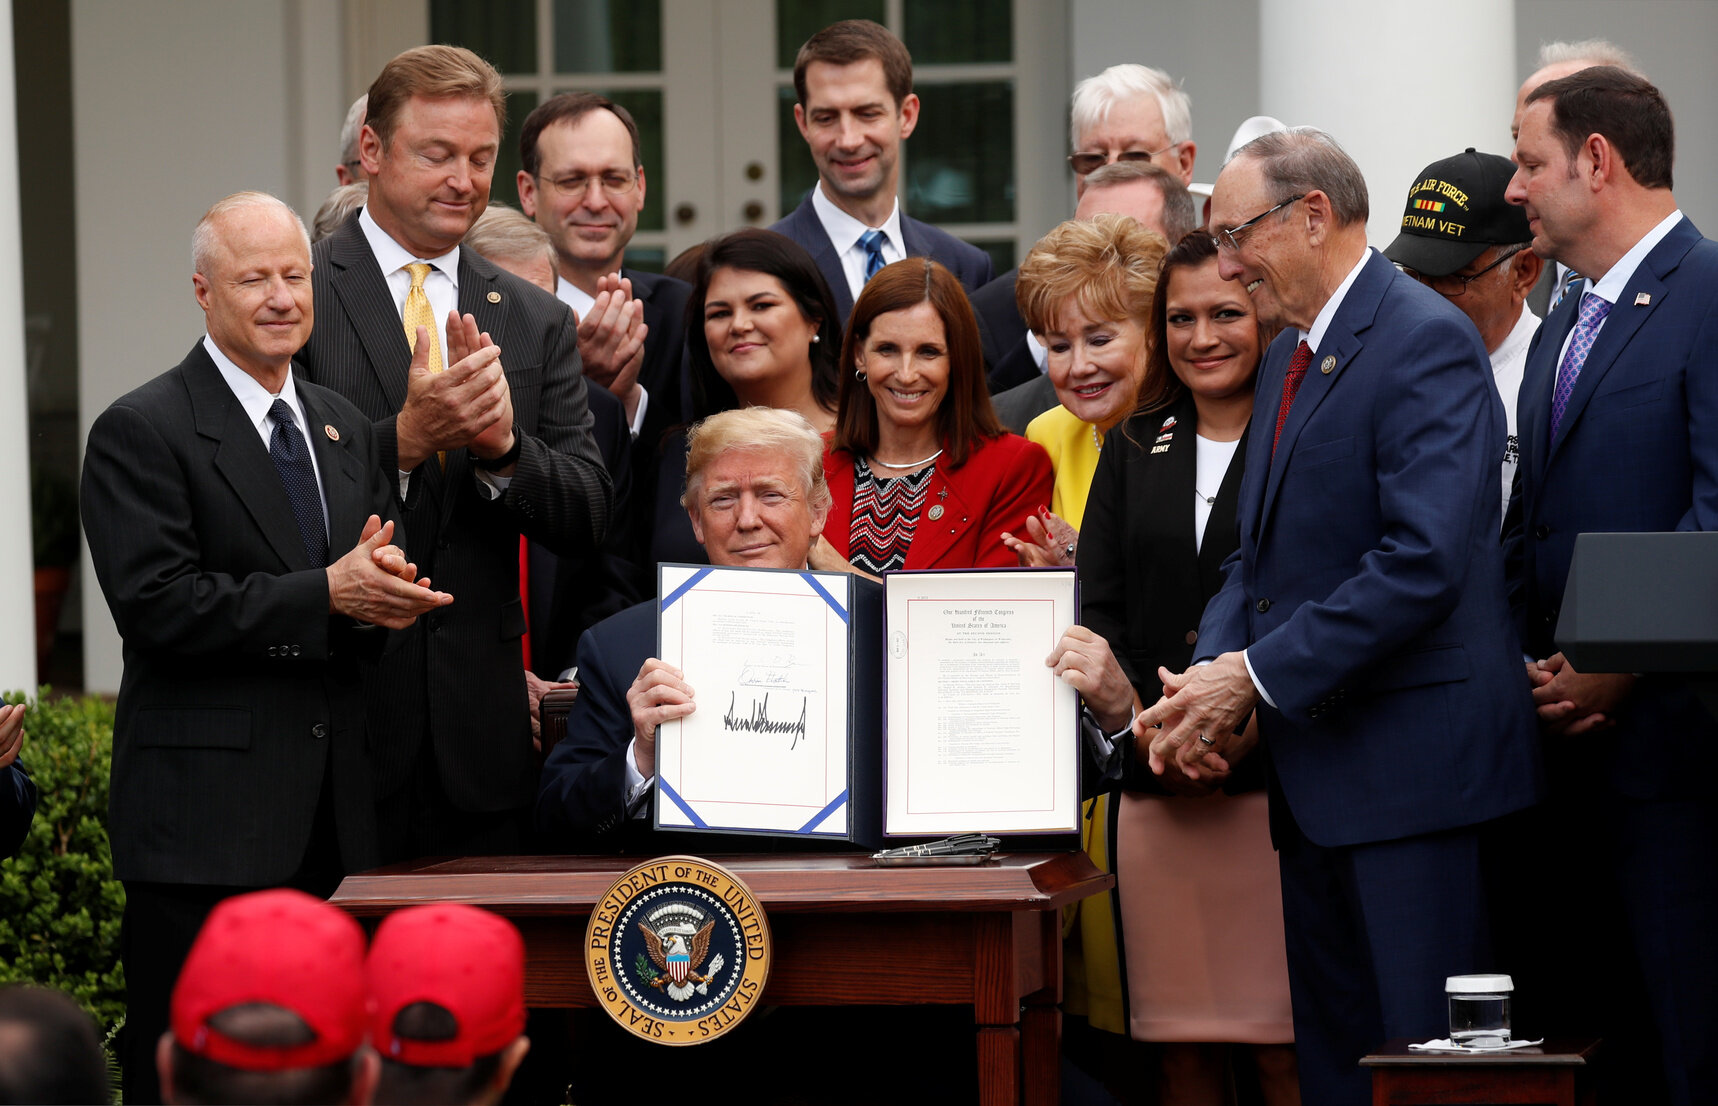 """U.S. President Donald Trump displays the """"VA (Veterans Affairs) Mission Act of 2018"""" after signing it in the Rose Garden of the White House in Washington, U.S., June 6, 2018. [REUTERS/Kevin Lamarque]"""